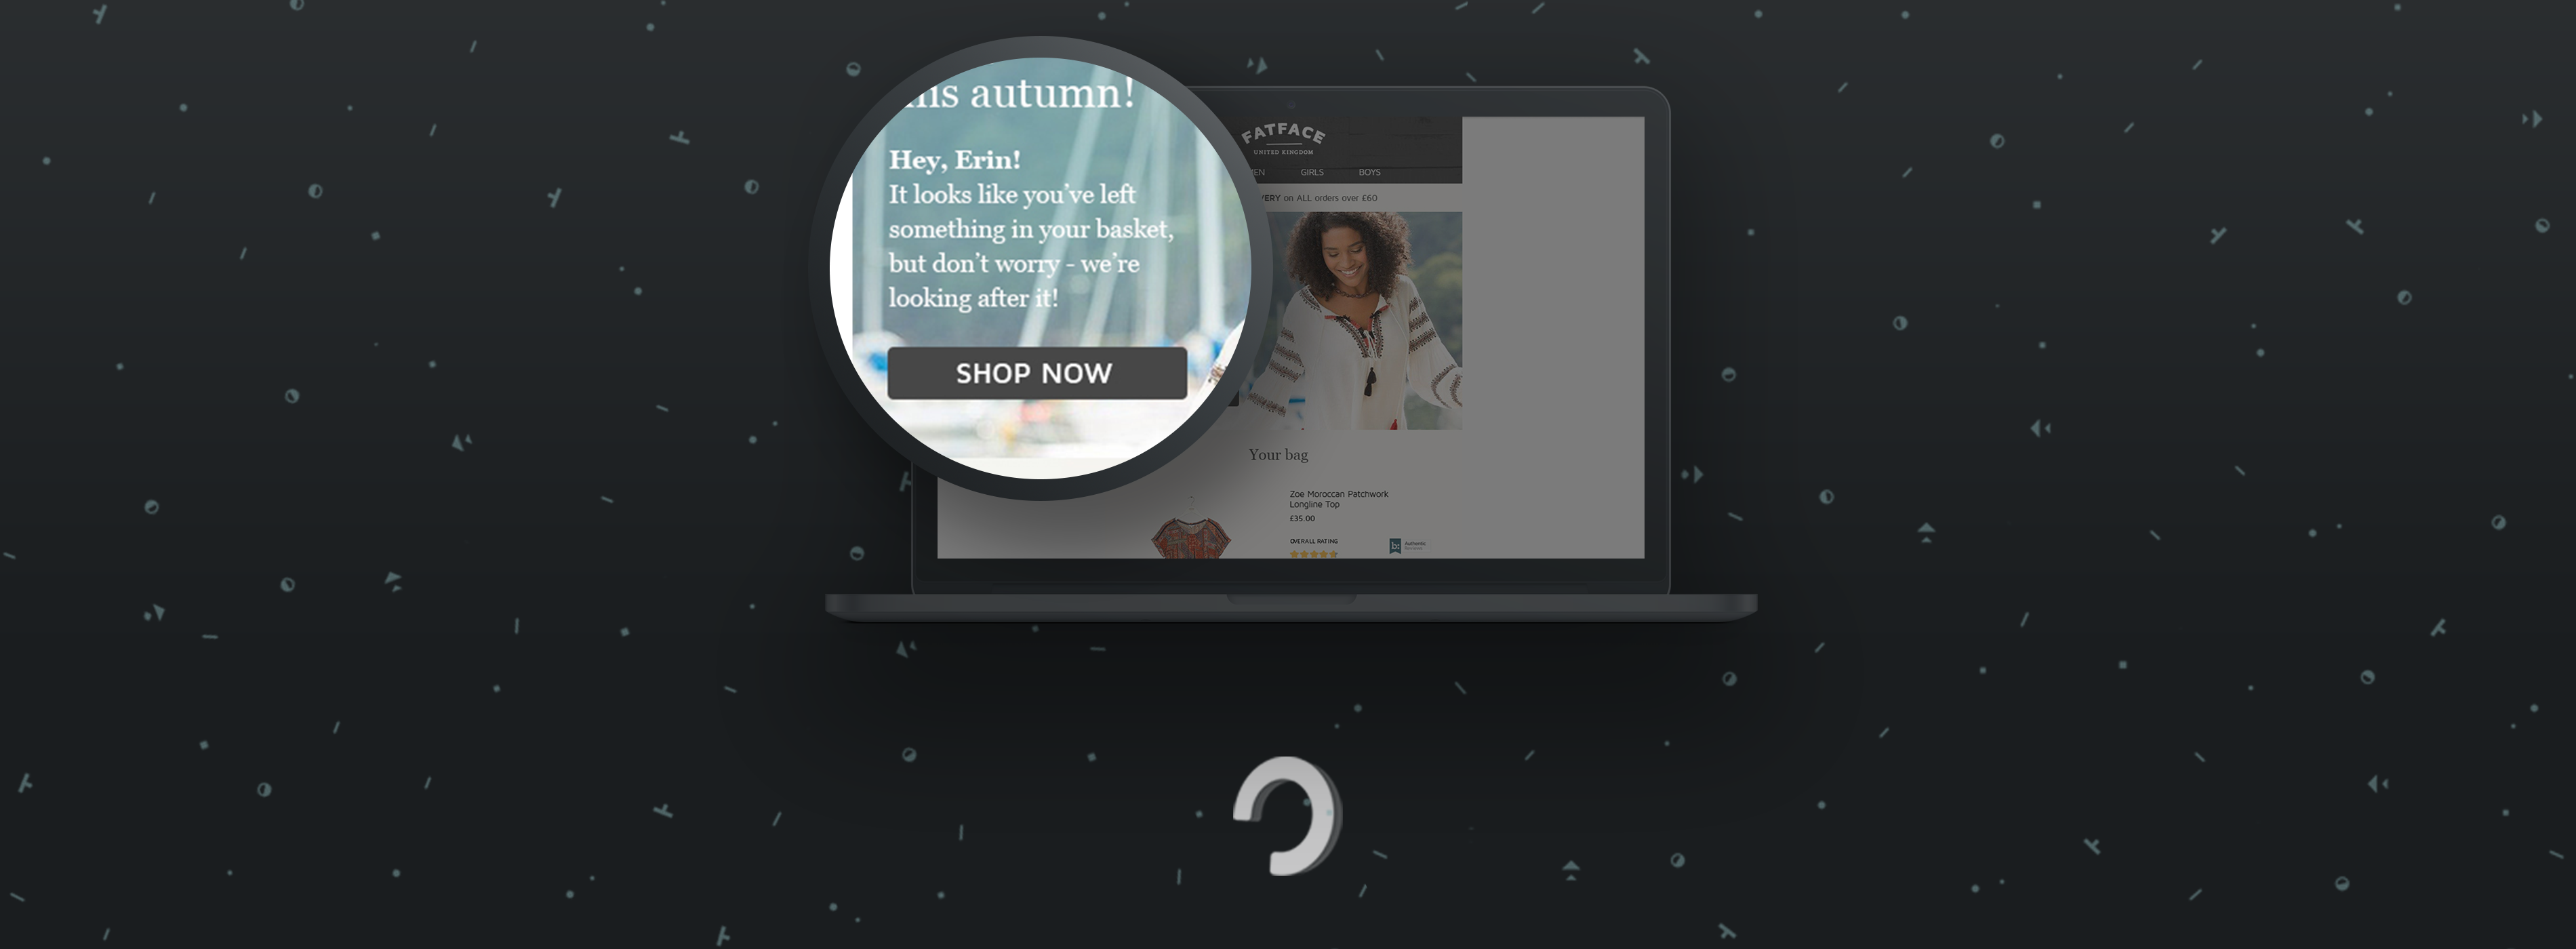 Are Retailers Wasting Their Time With Personalization?